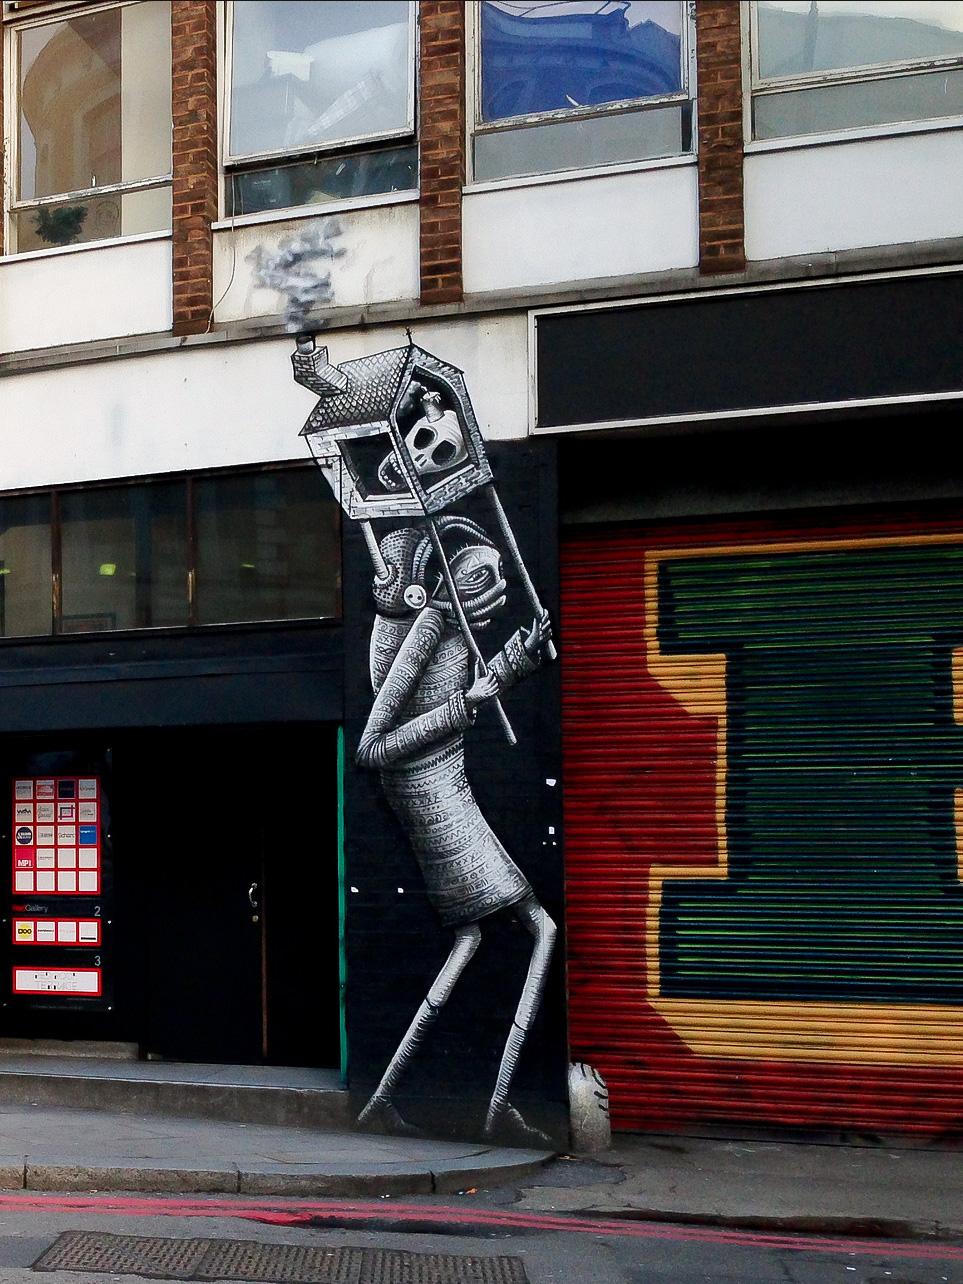 Phlegm's black and white figures in London.